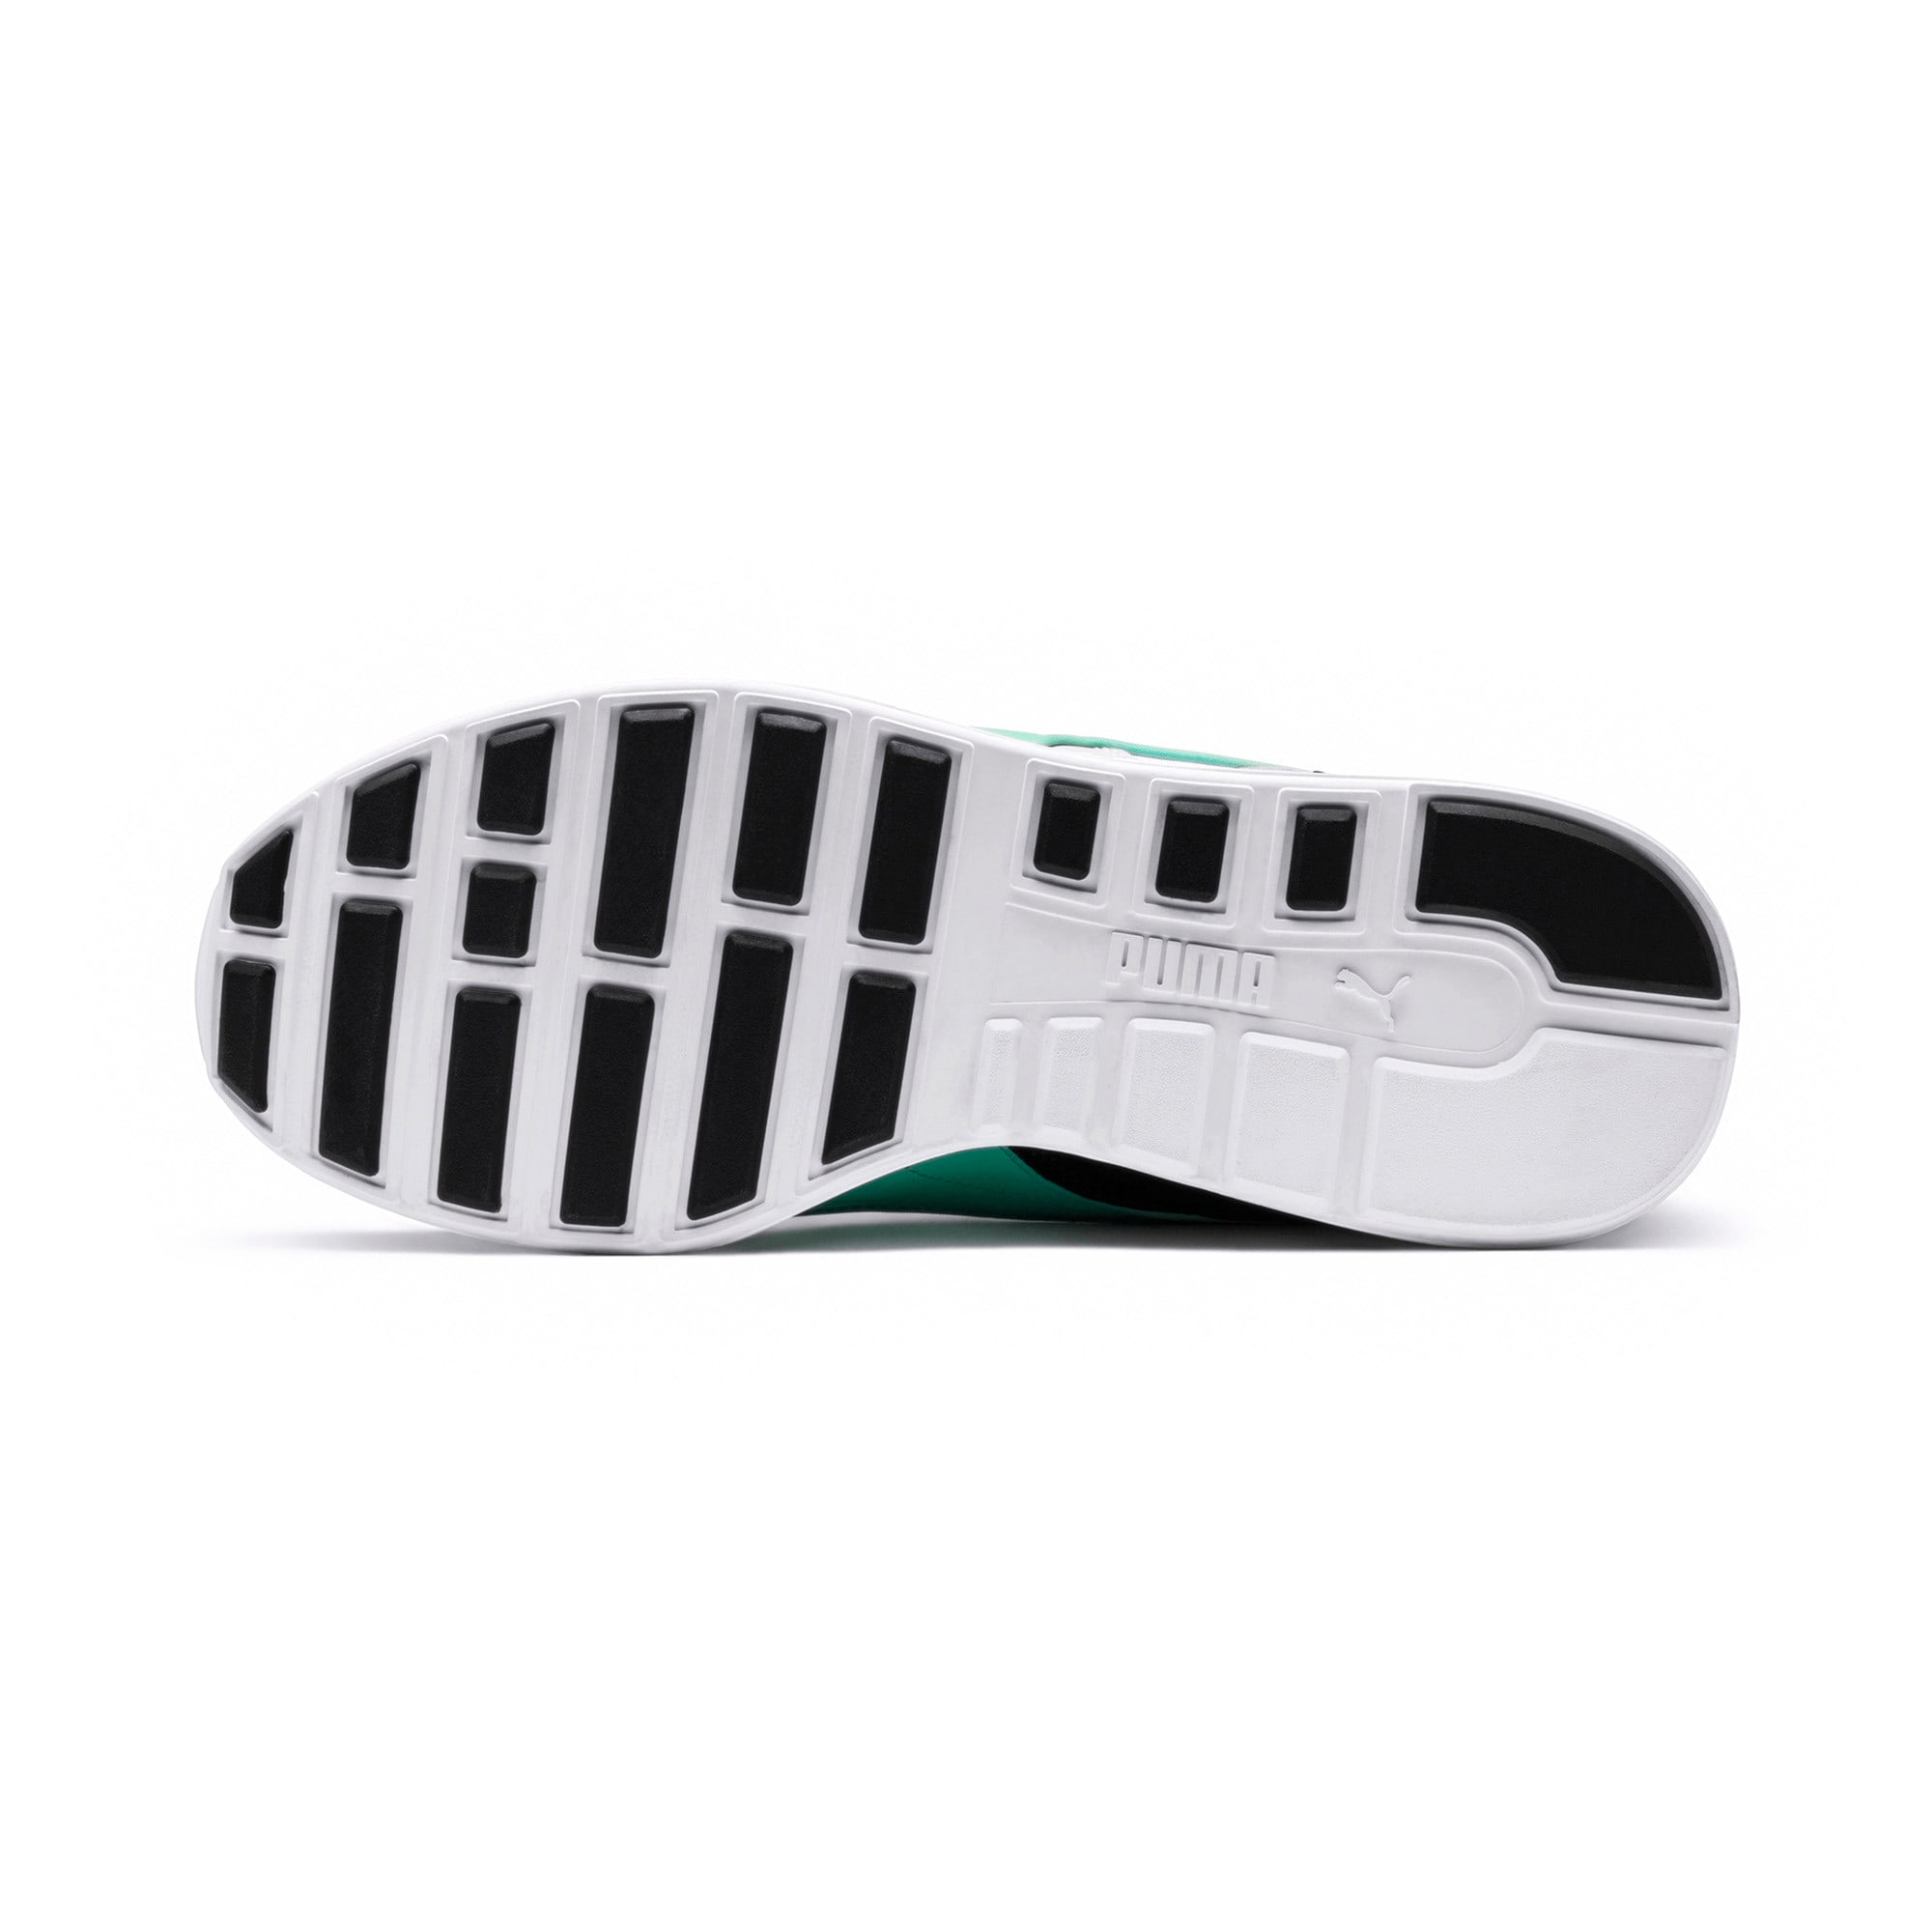 Thumbnail 3 of RS-100 RE-INVENTION, GrayViolet-BiscayGreen-White, medium-JPN